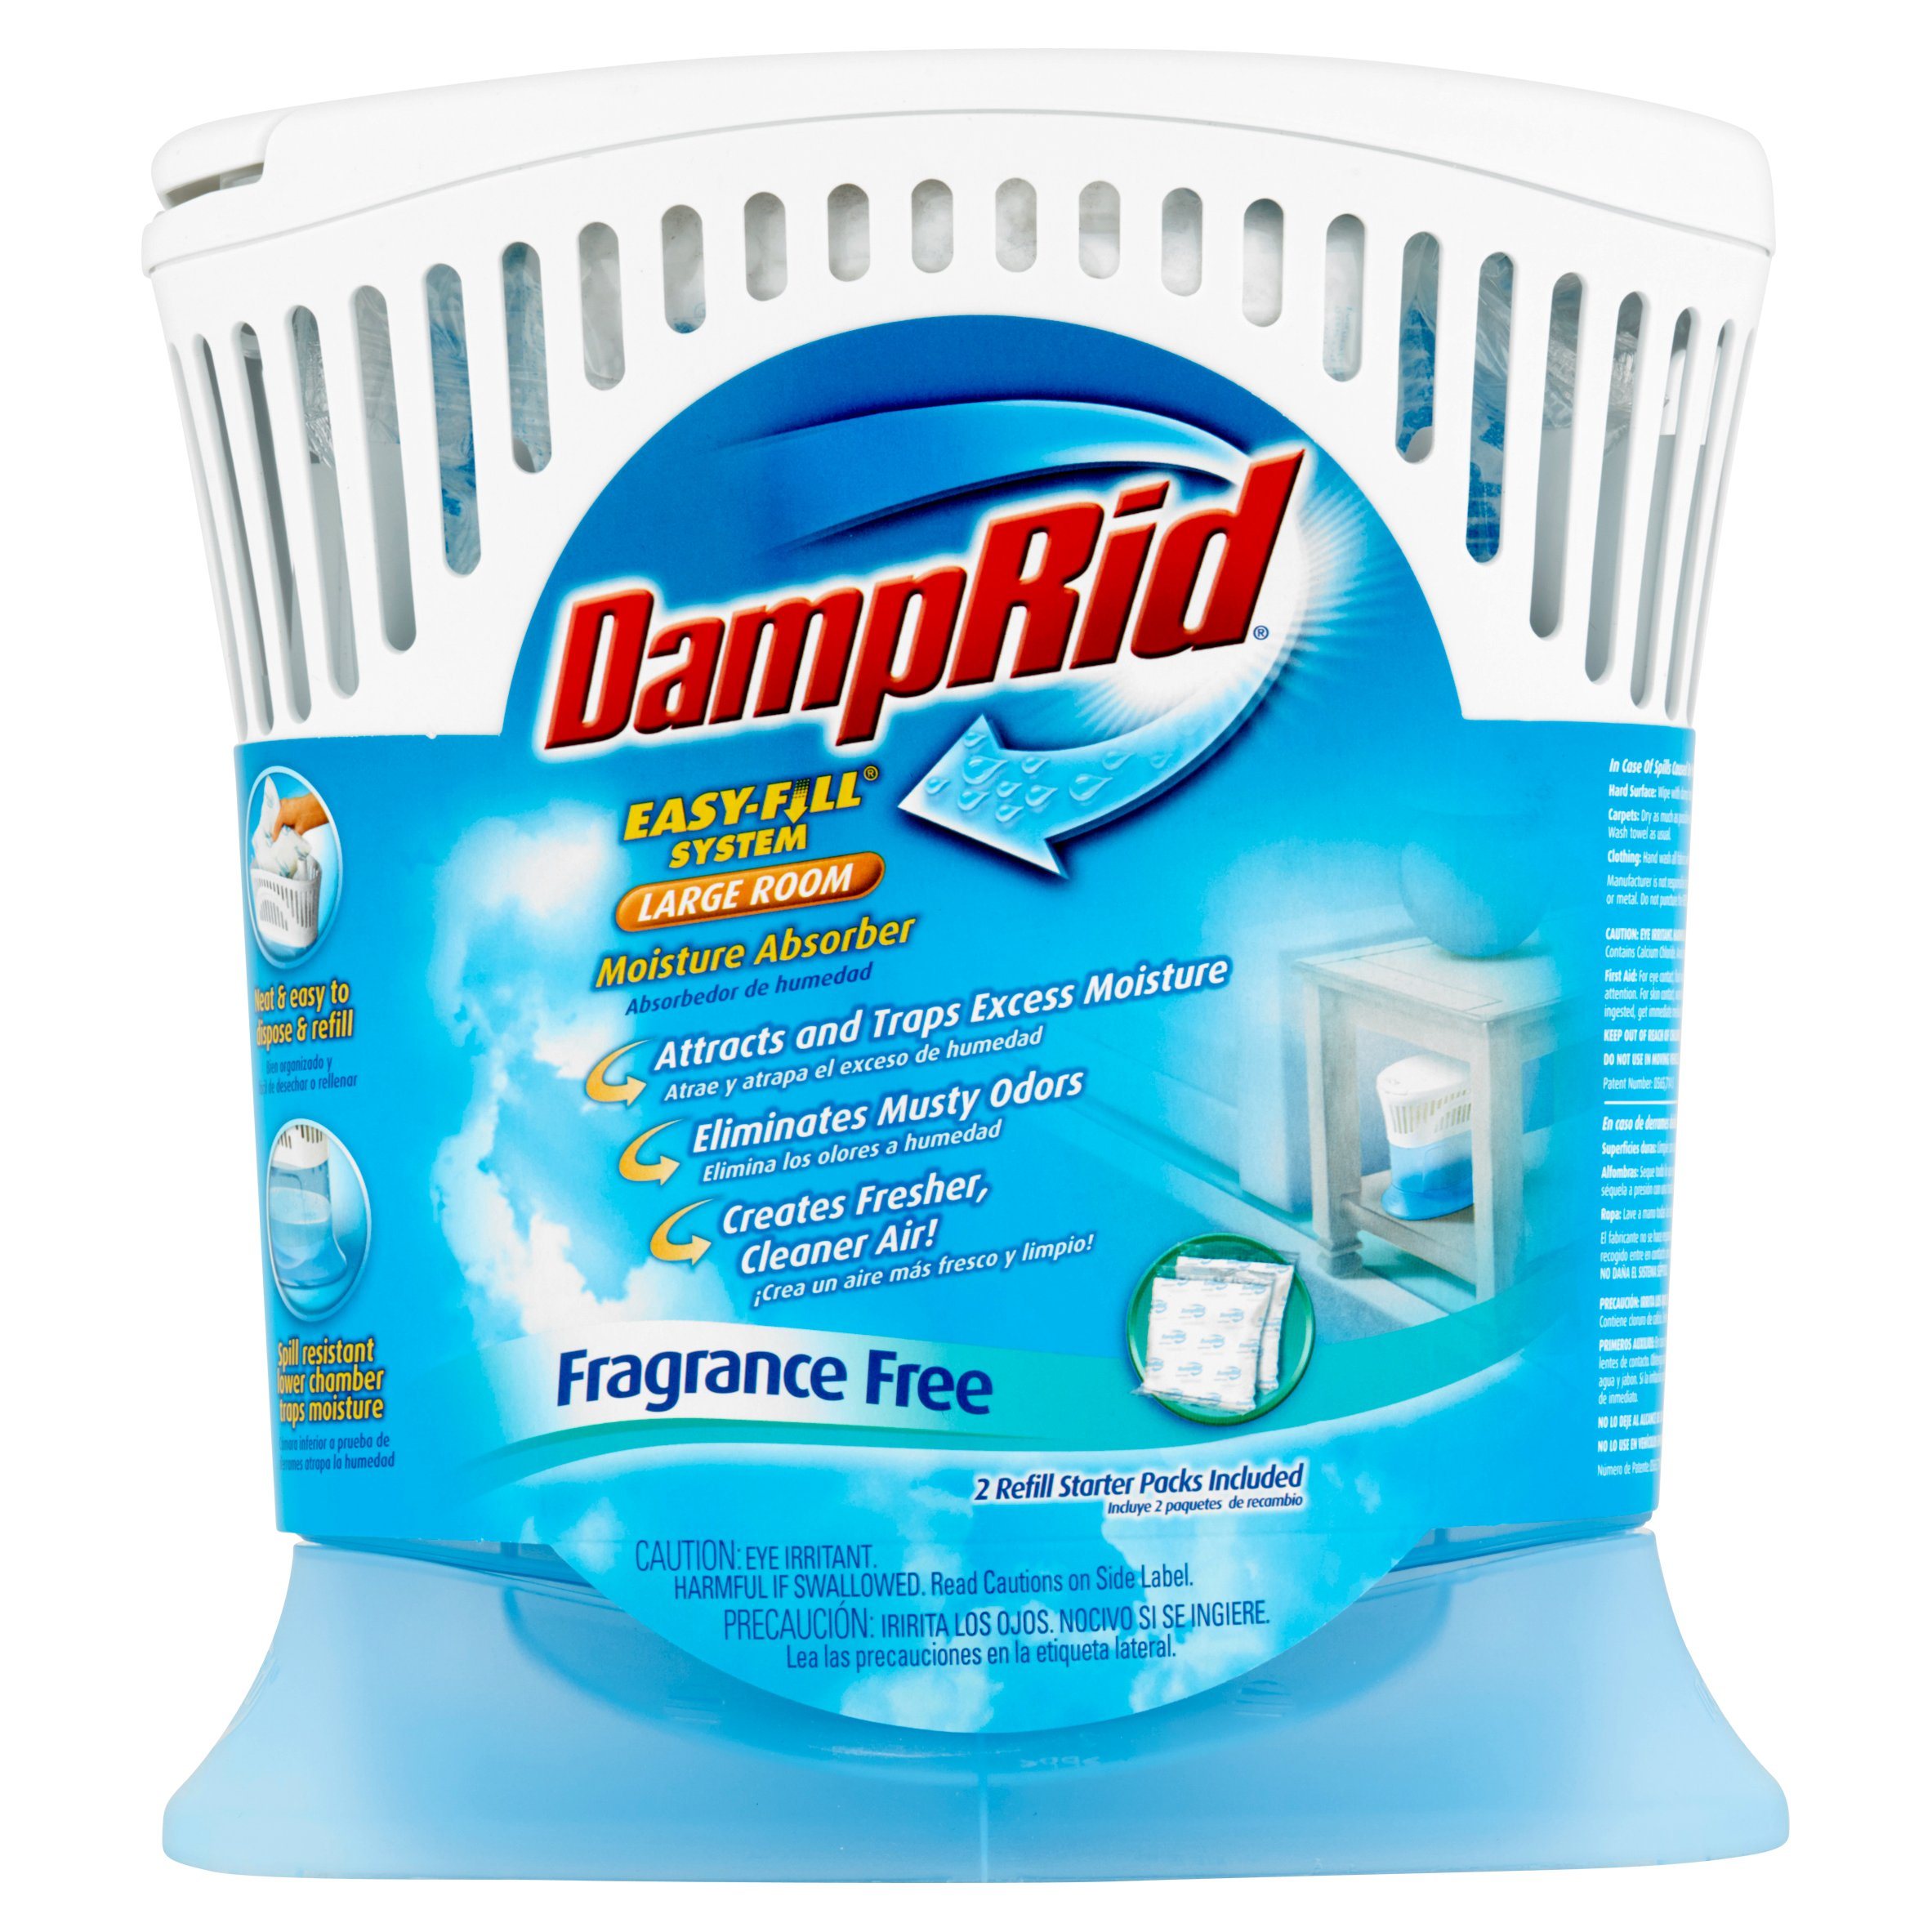 DampRid Easy Fill System Large Room Moisture Absorber